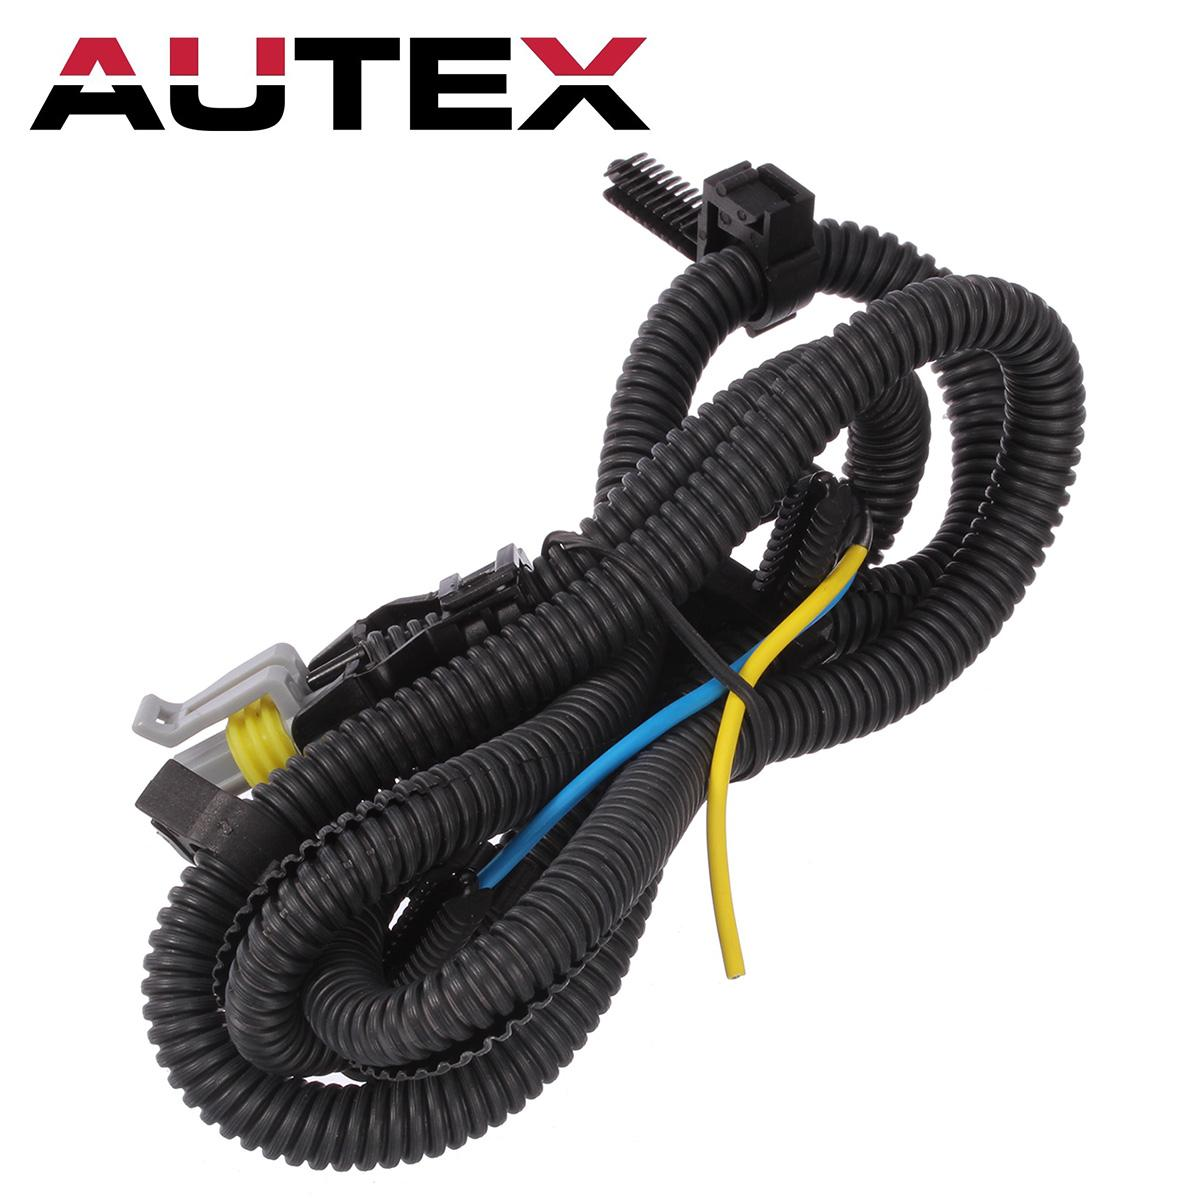 N abs speed sensor harness wire front for